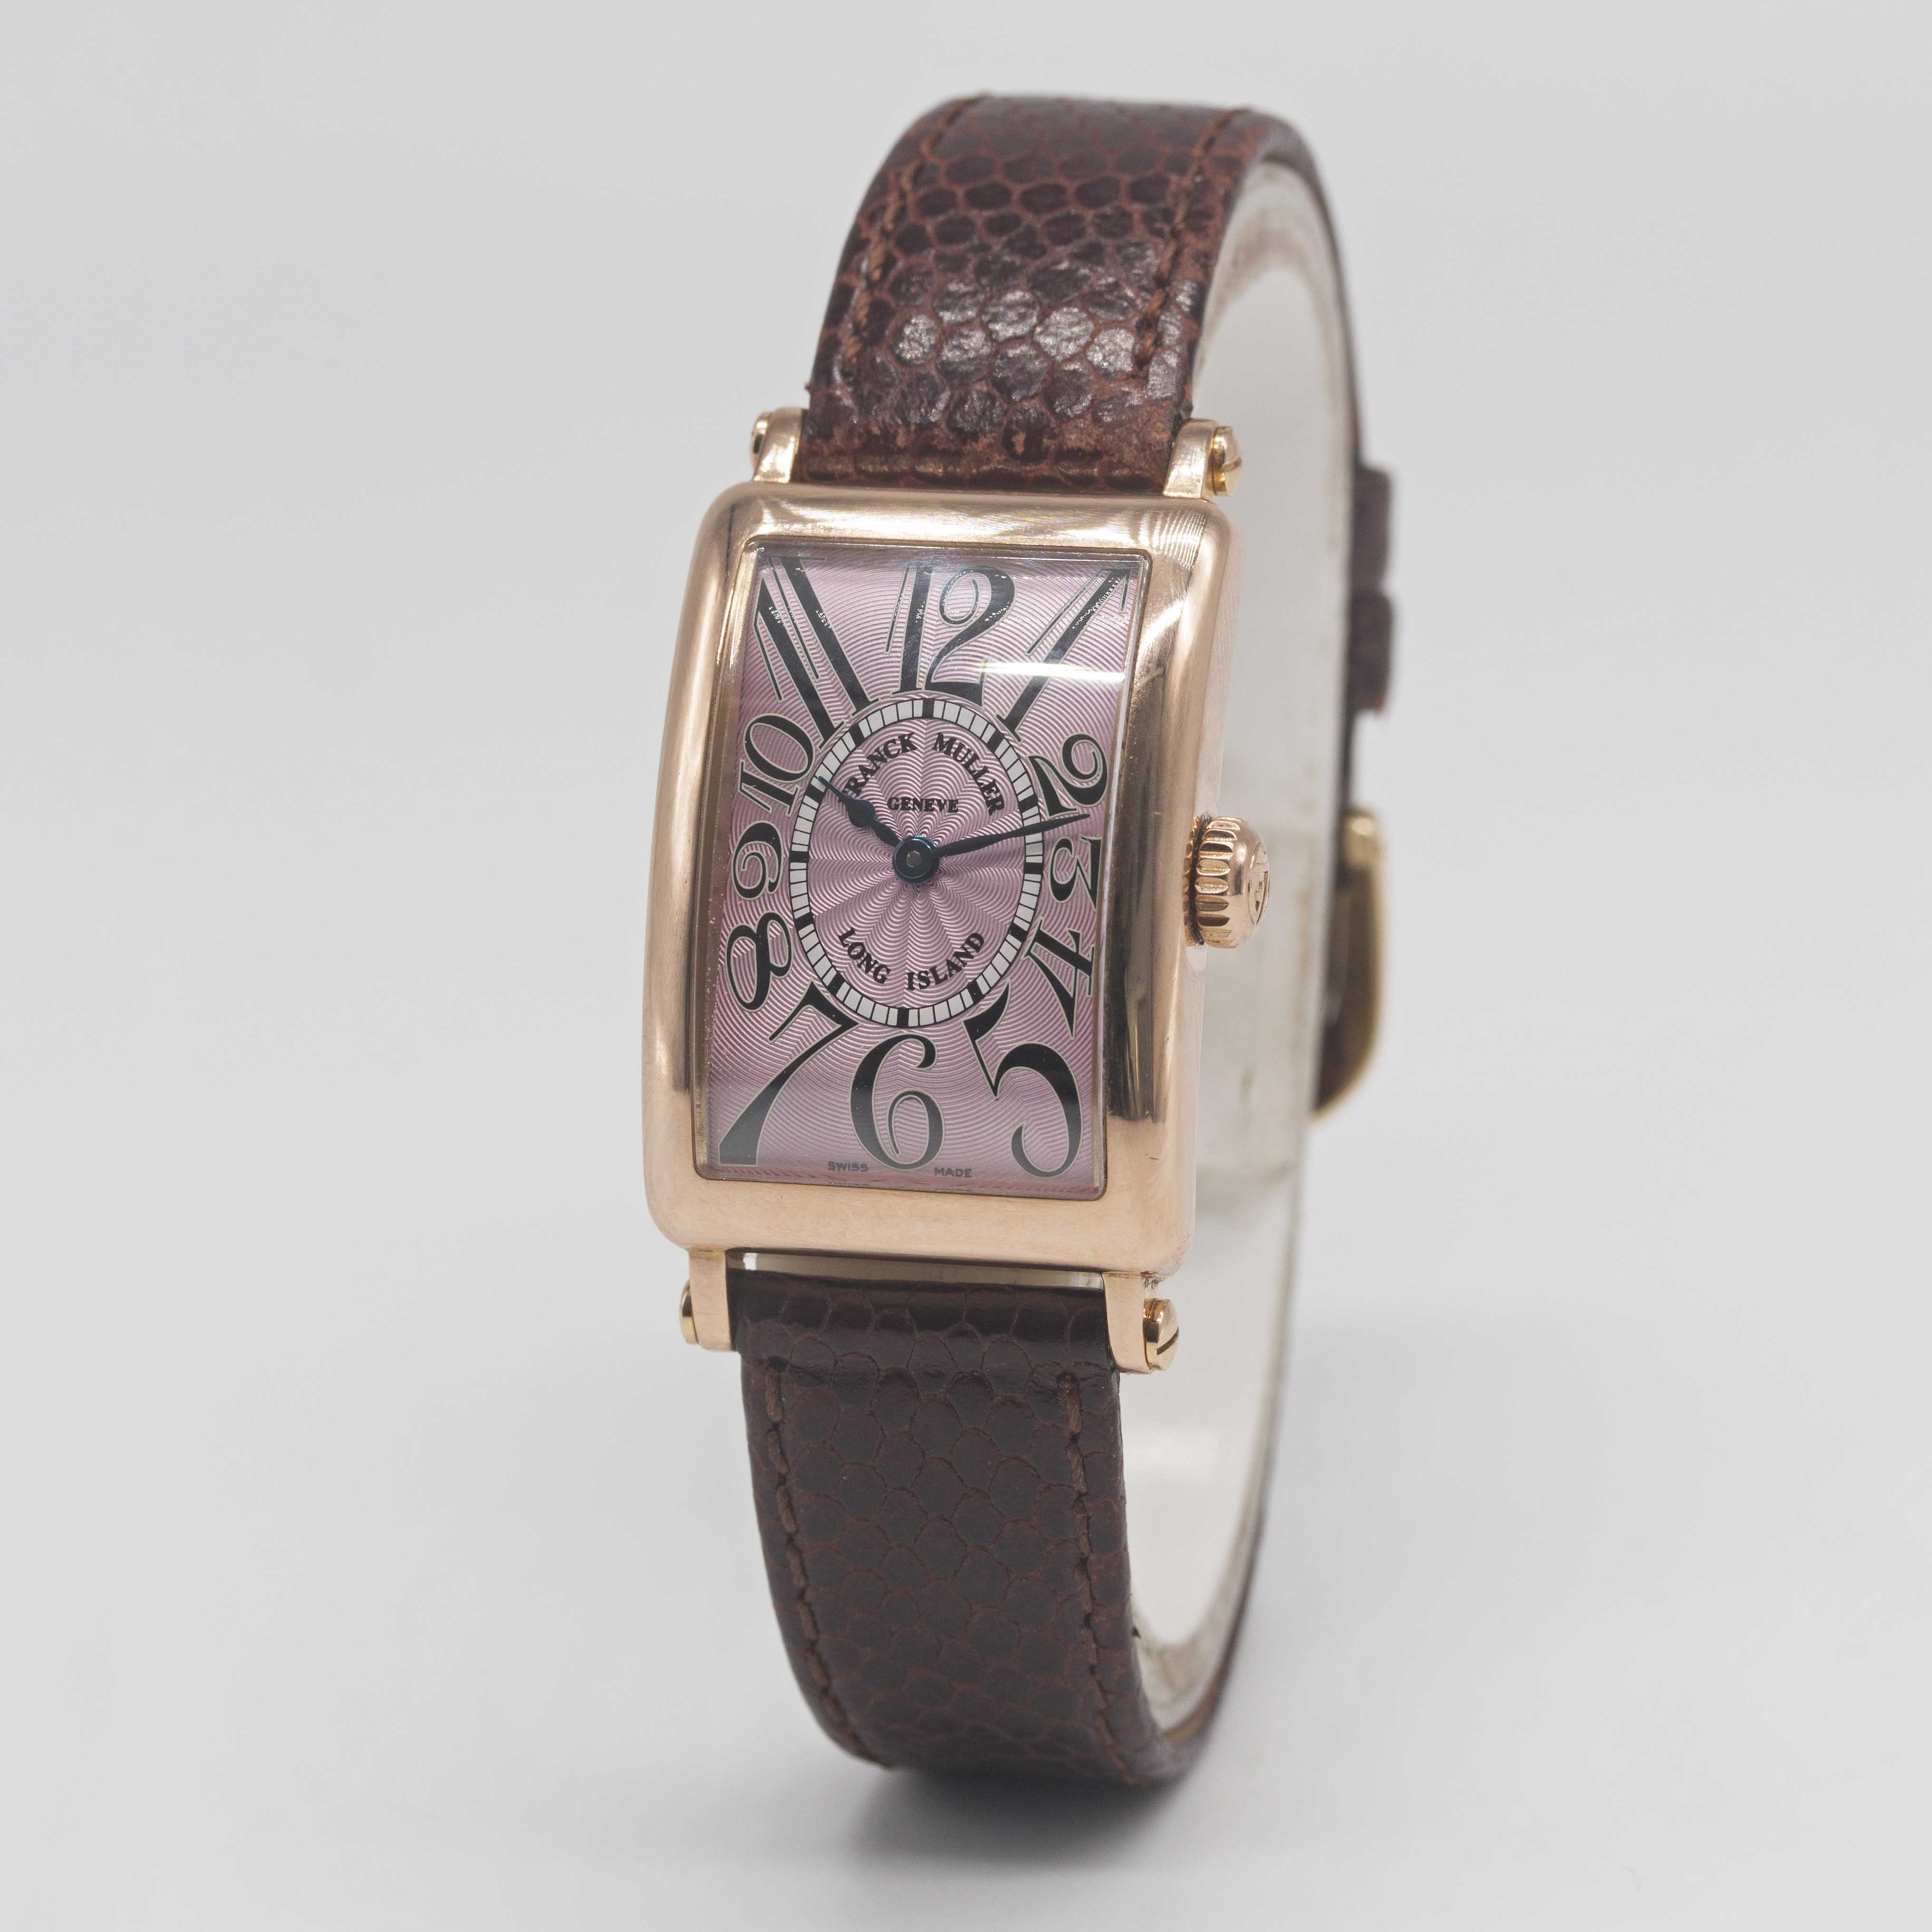 Lot 14 - A LADIES 18K SOLID ROSE GOLD FRANCK MULLER LONG ISLAND WRIST WATCH CIRCA 2005, REF. 900 QZ WITH PINK